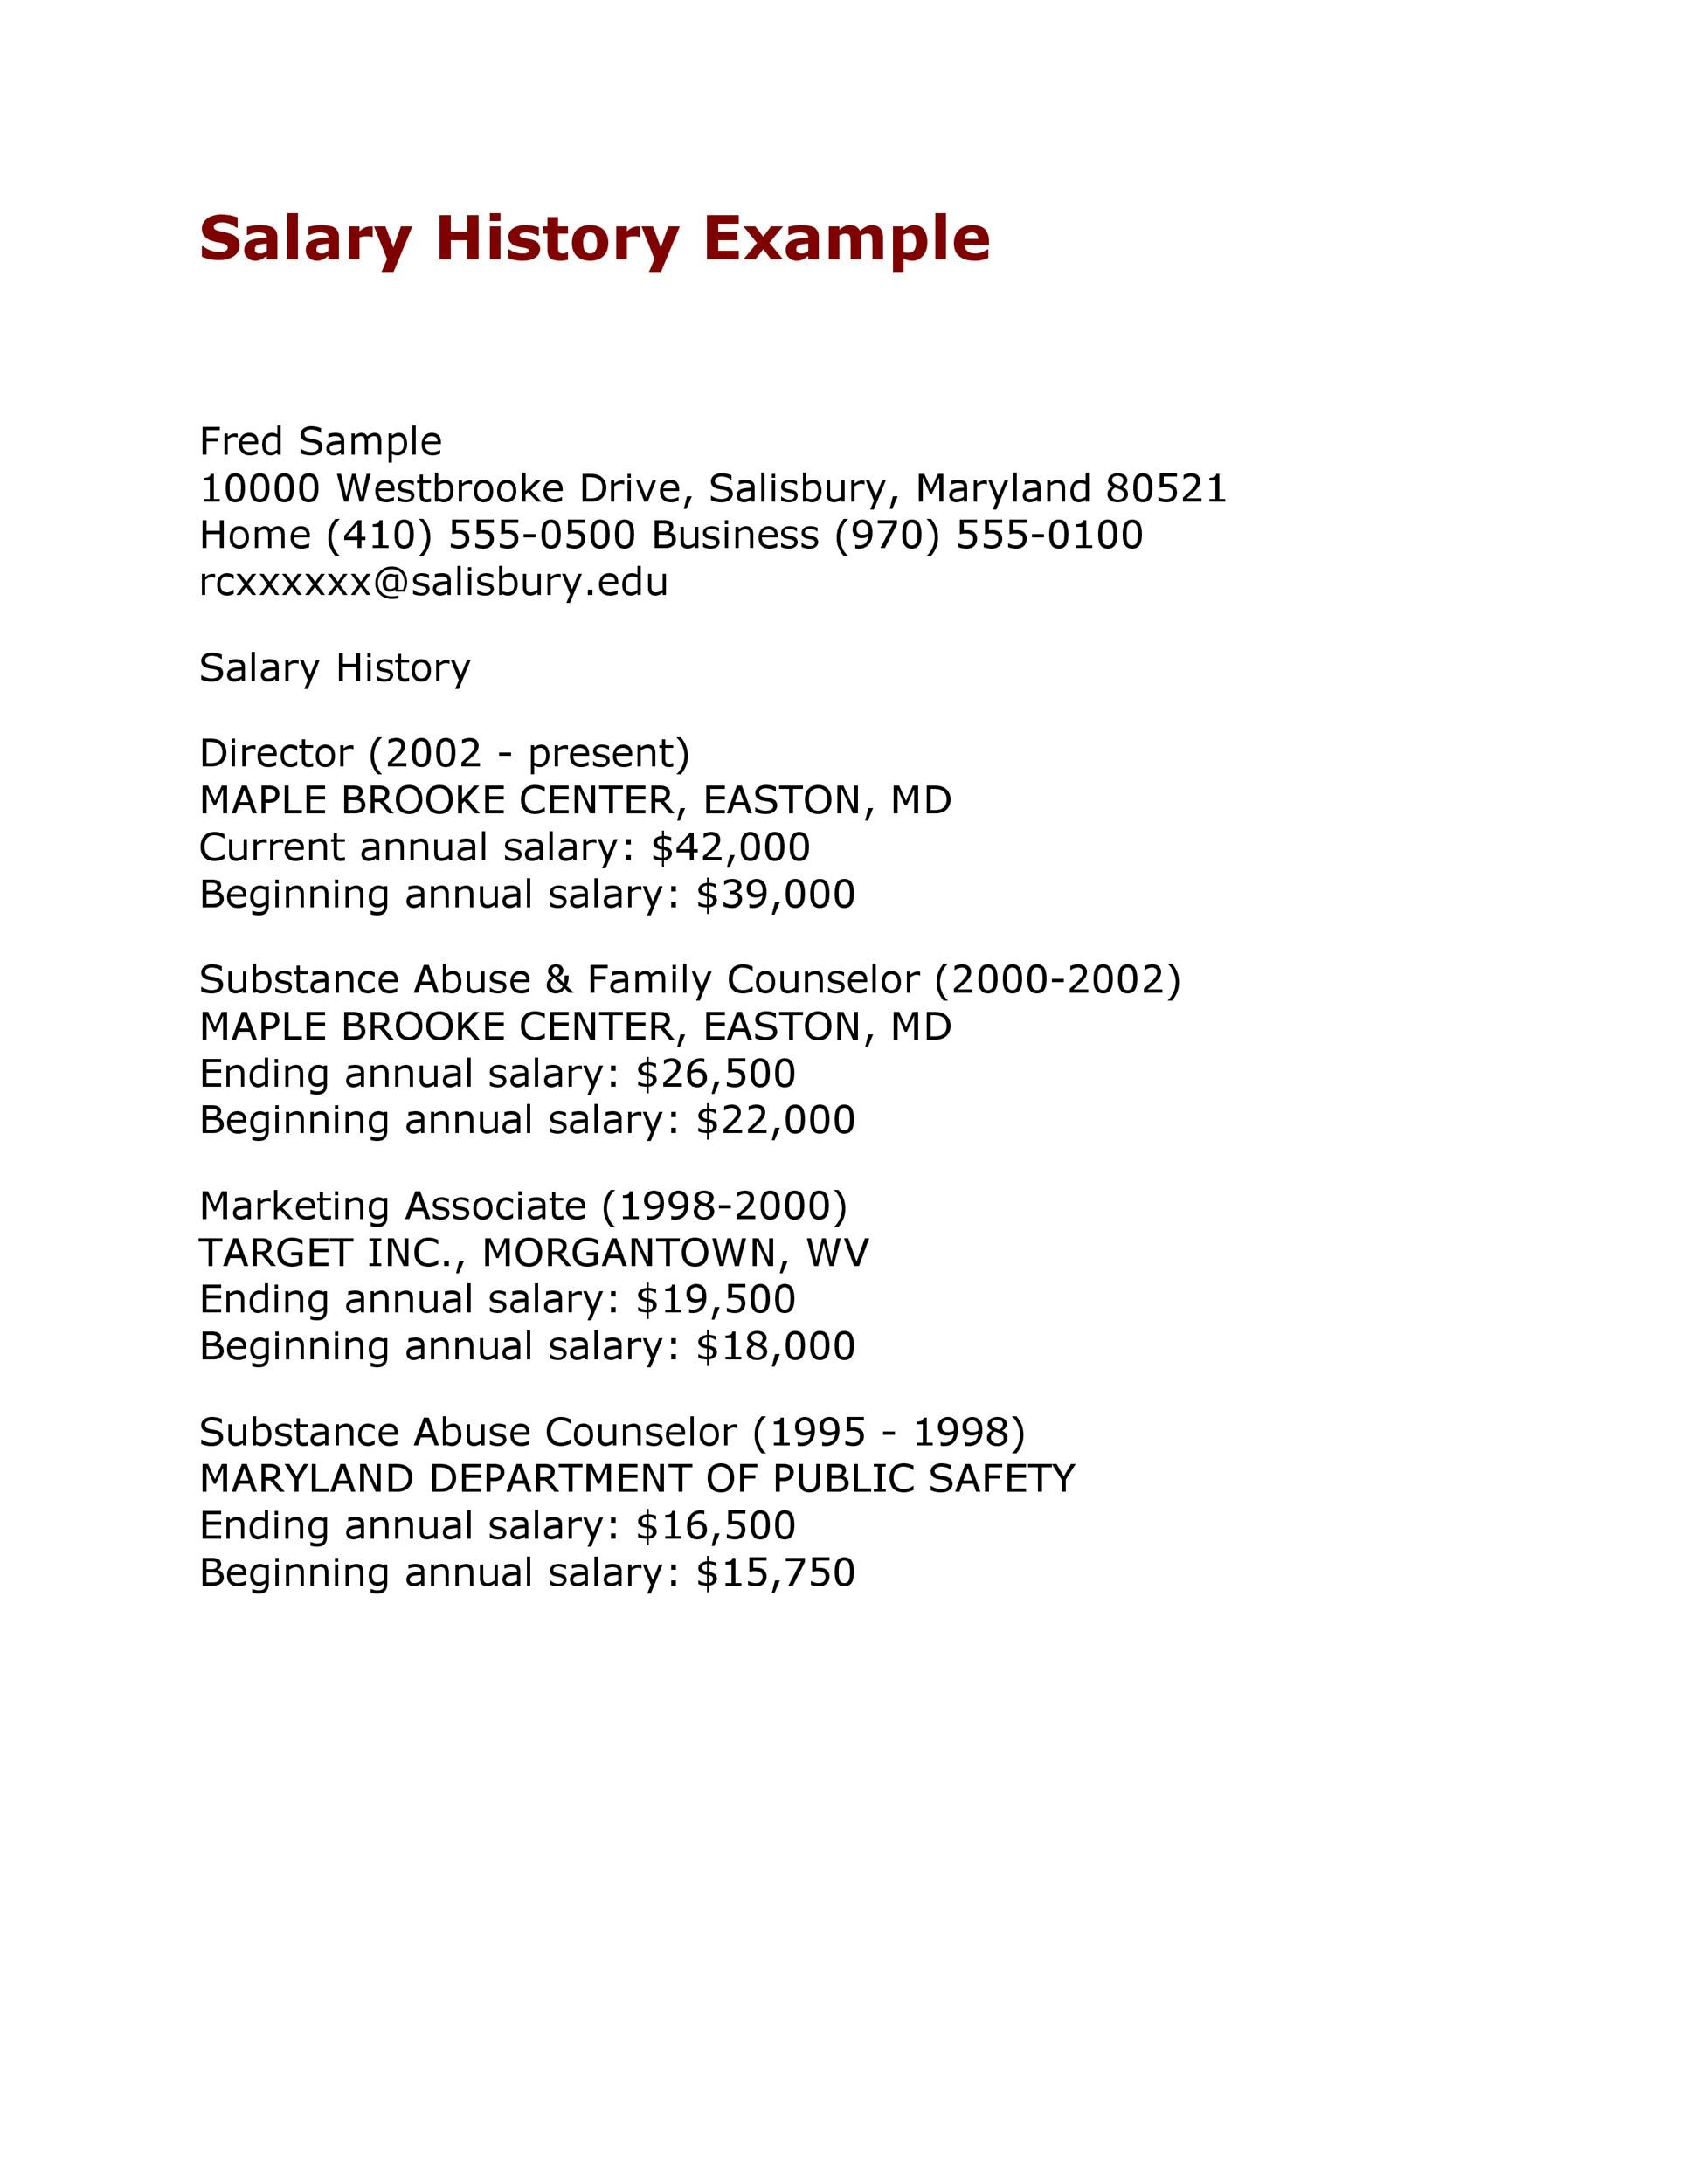 19 great salary history templates samples template lab for Salary history template hourly